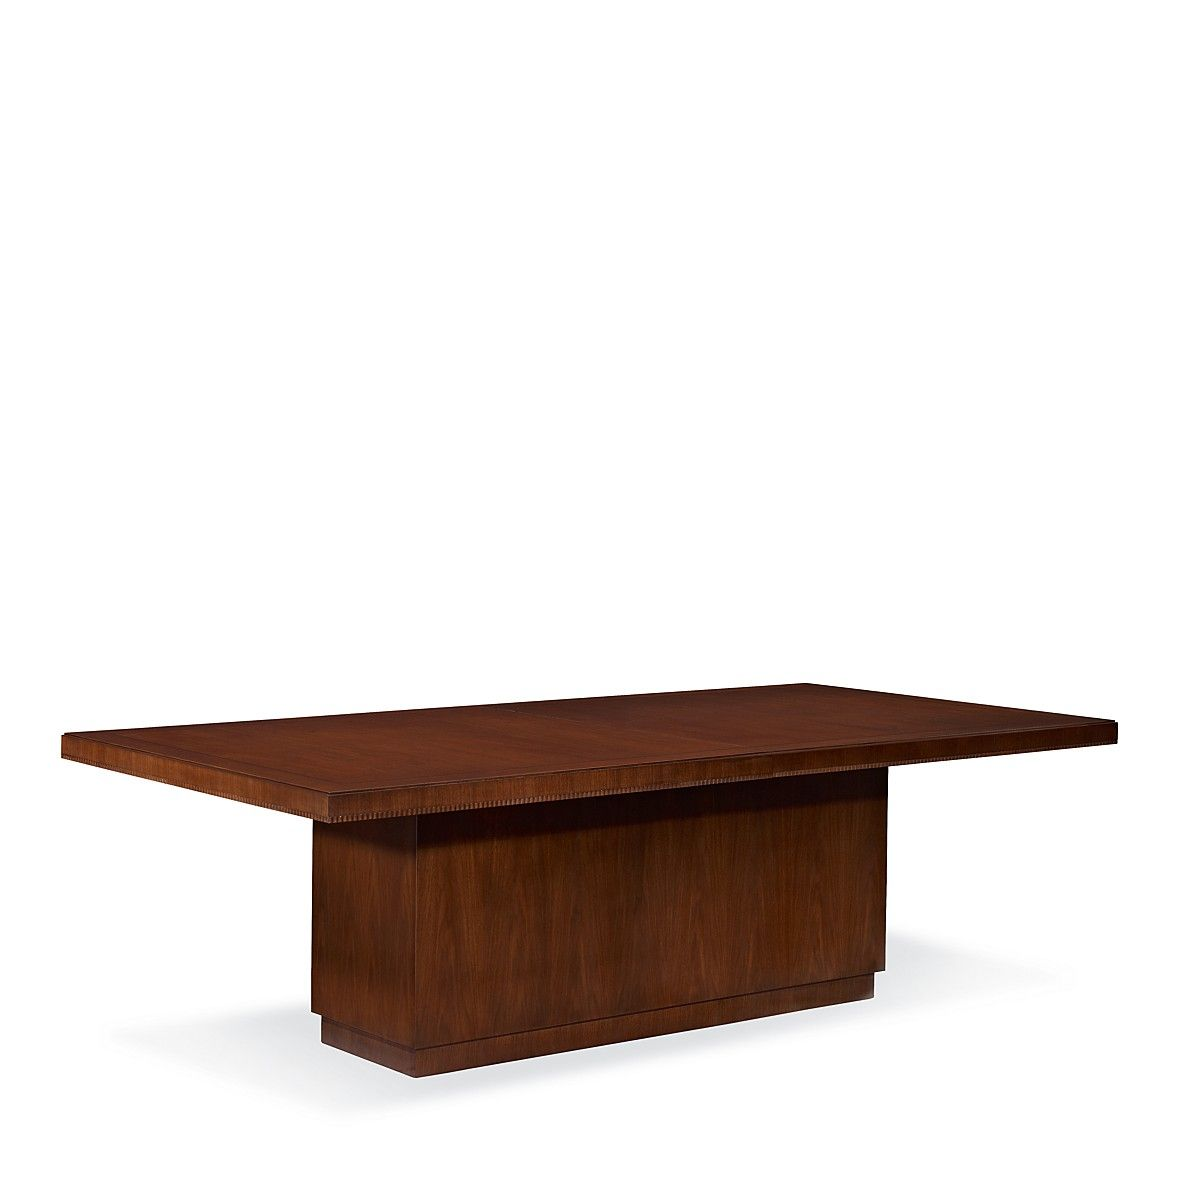 Ralph Lauren Modern Hollywood Dining Table Home Furniture Dining Room Furniture Dining Room Tables Bloomingdale S Dining Table Online Dining Table Furniture Dining Room Table